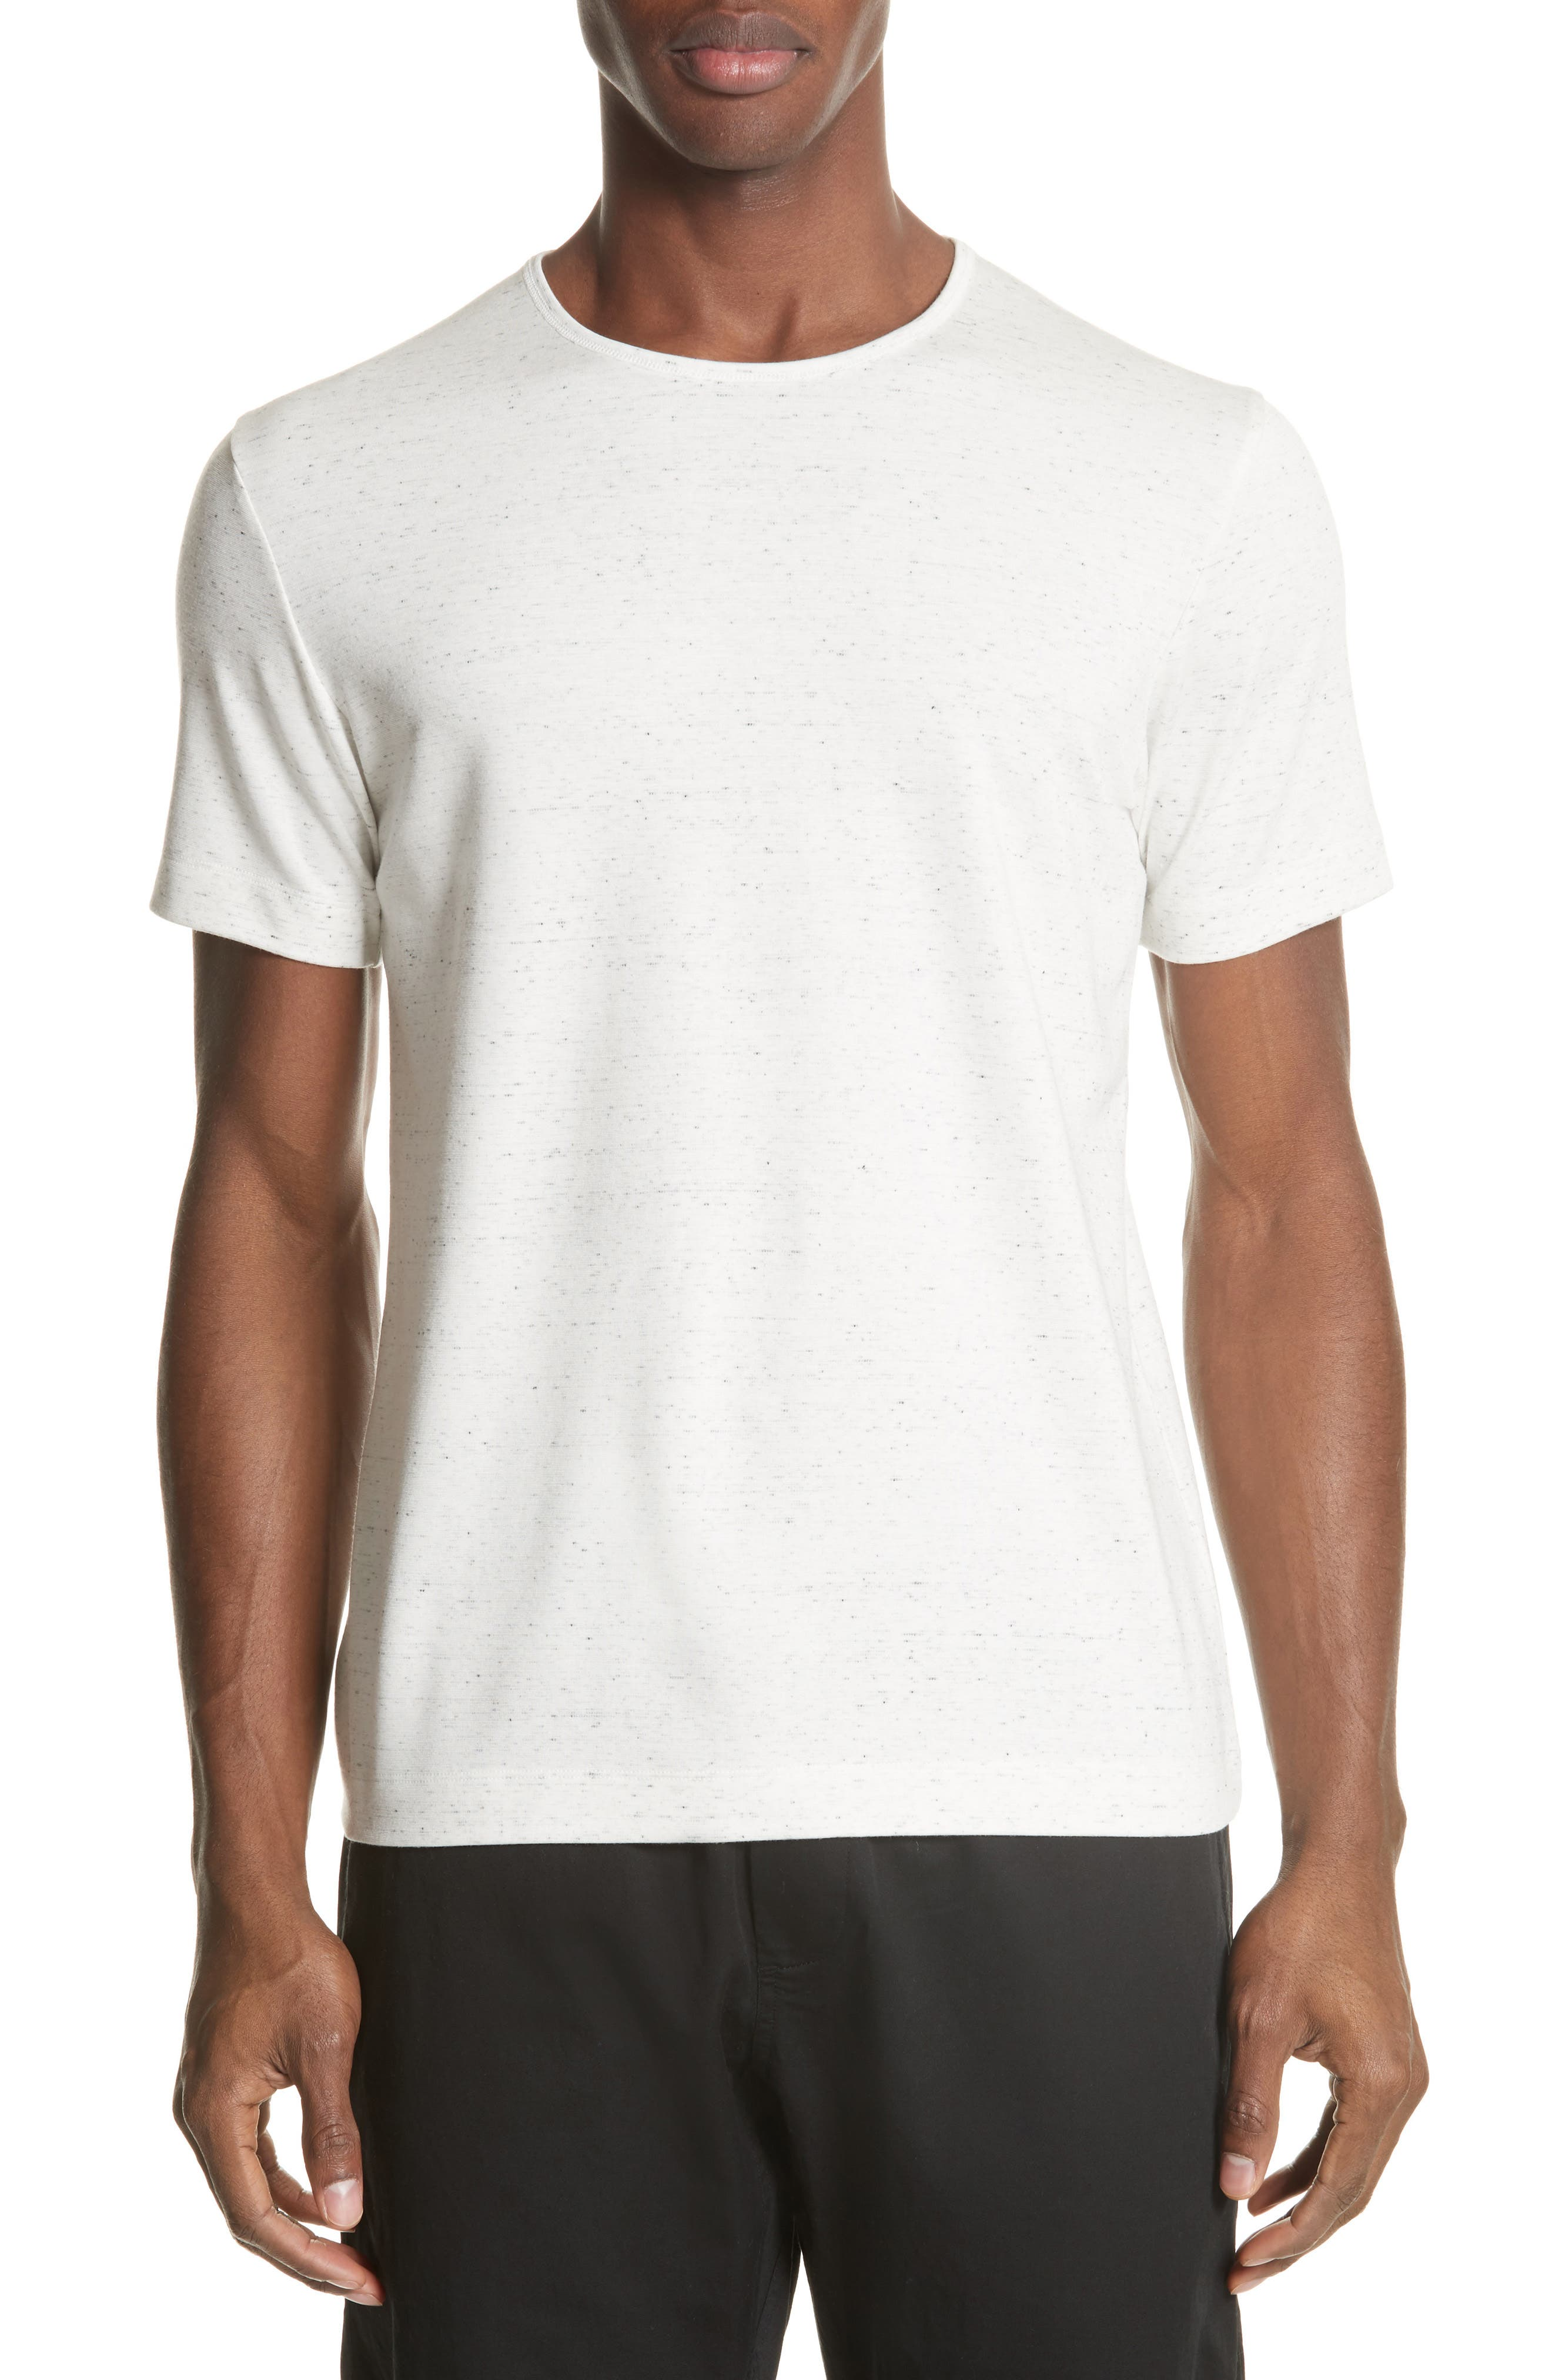 Signals T-Shirt,                         Main,                         color, Static White